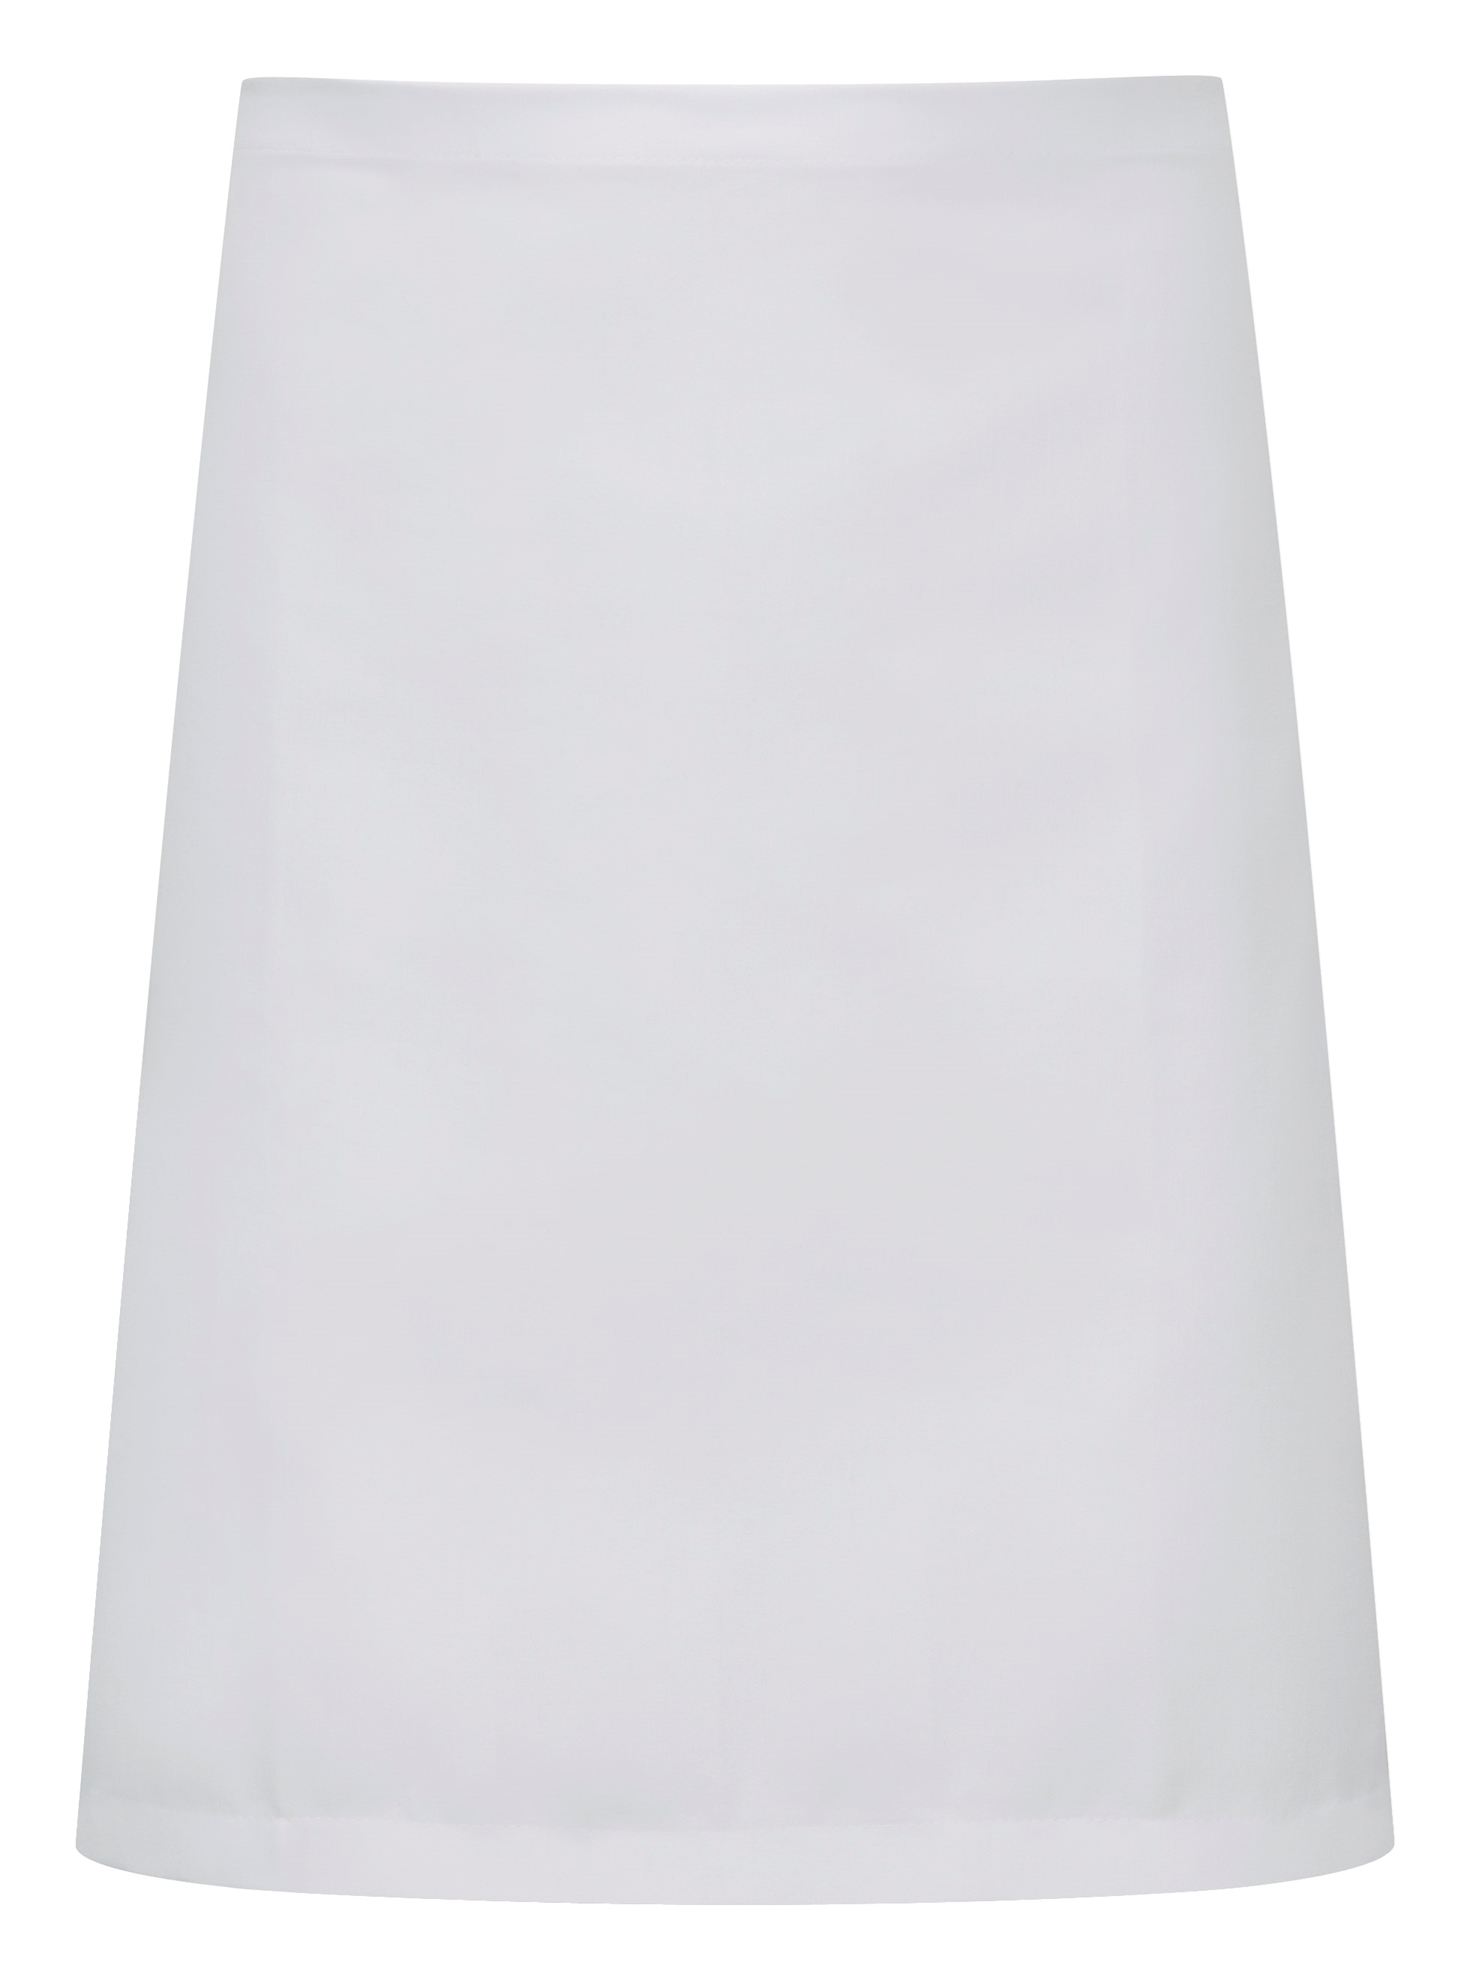 Picture of Chefs short waist apron - White